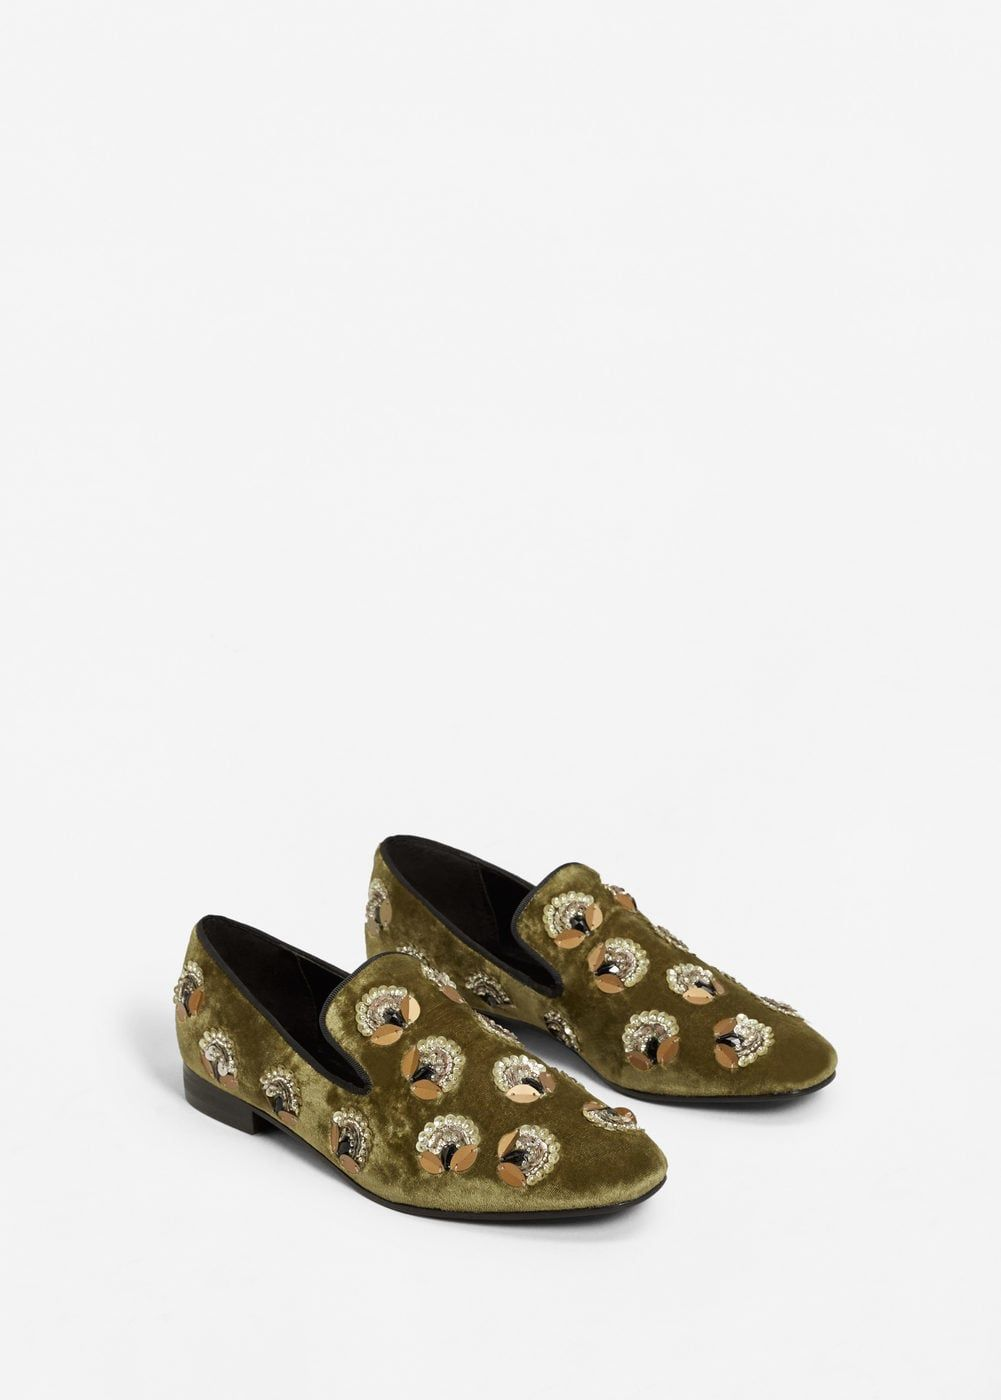 579774c2425 Appliqués velvet loafers - f foFlat shoes Women